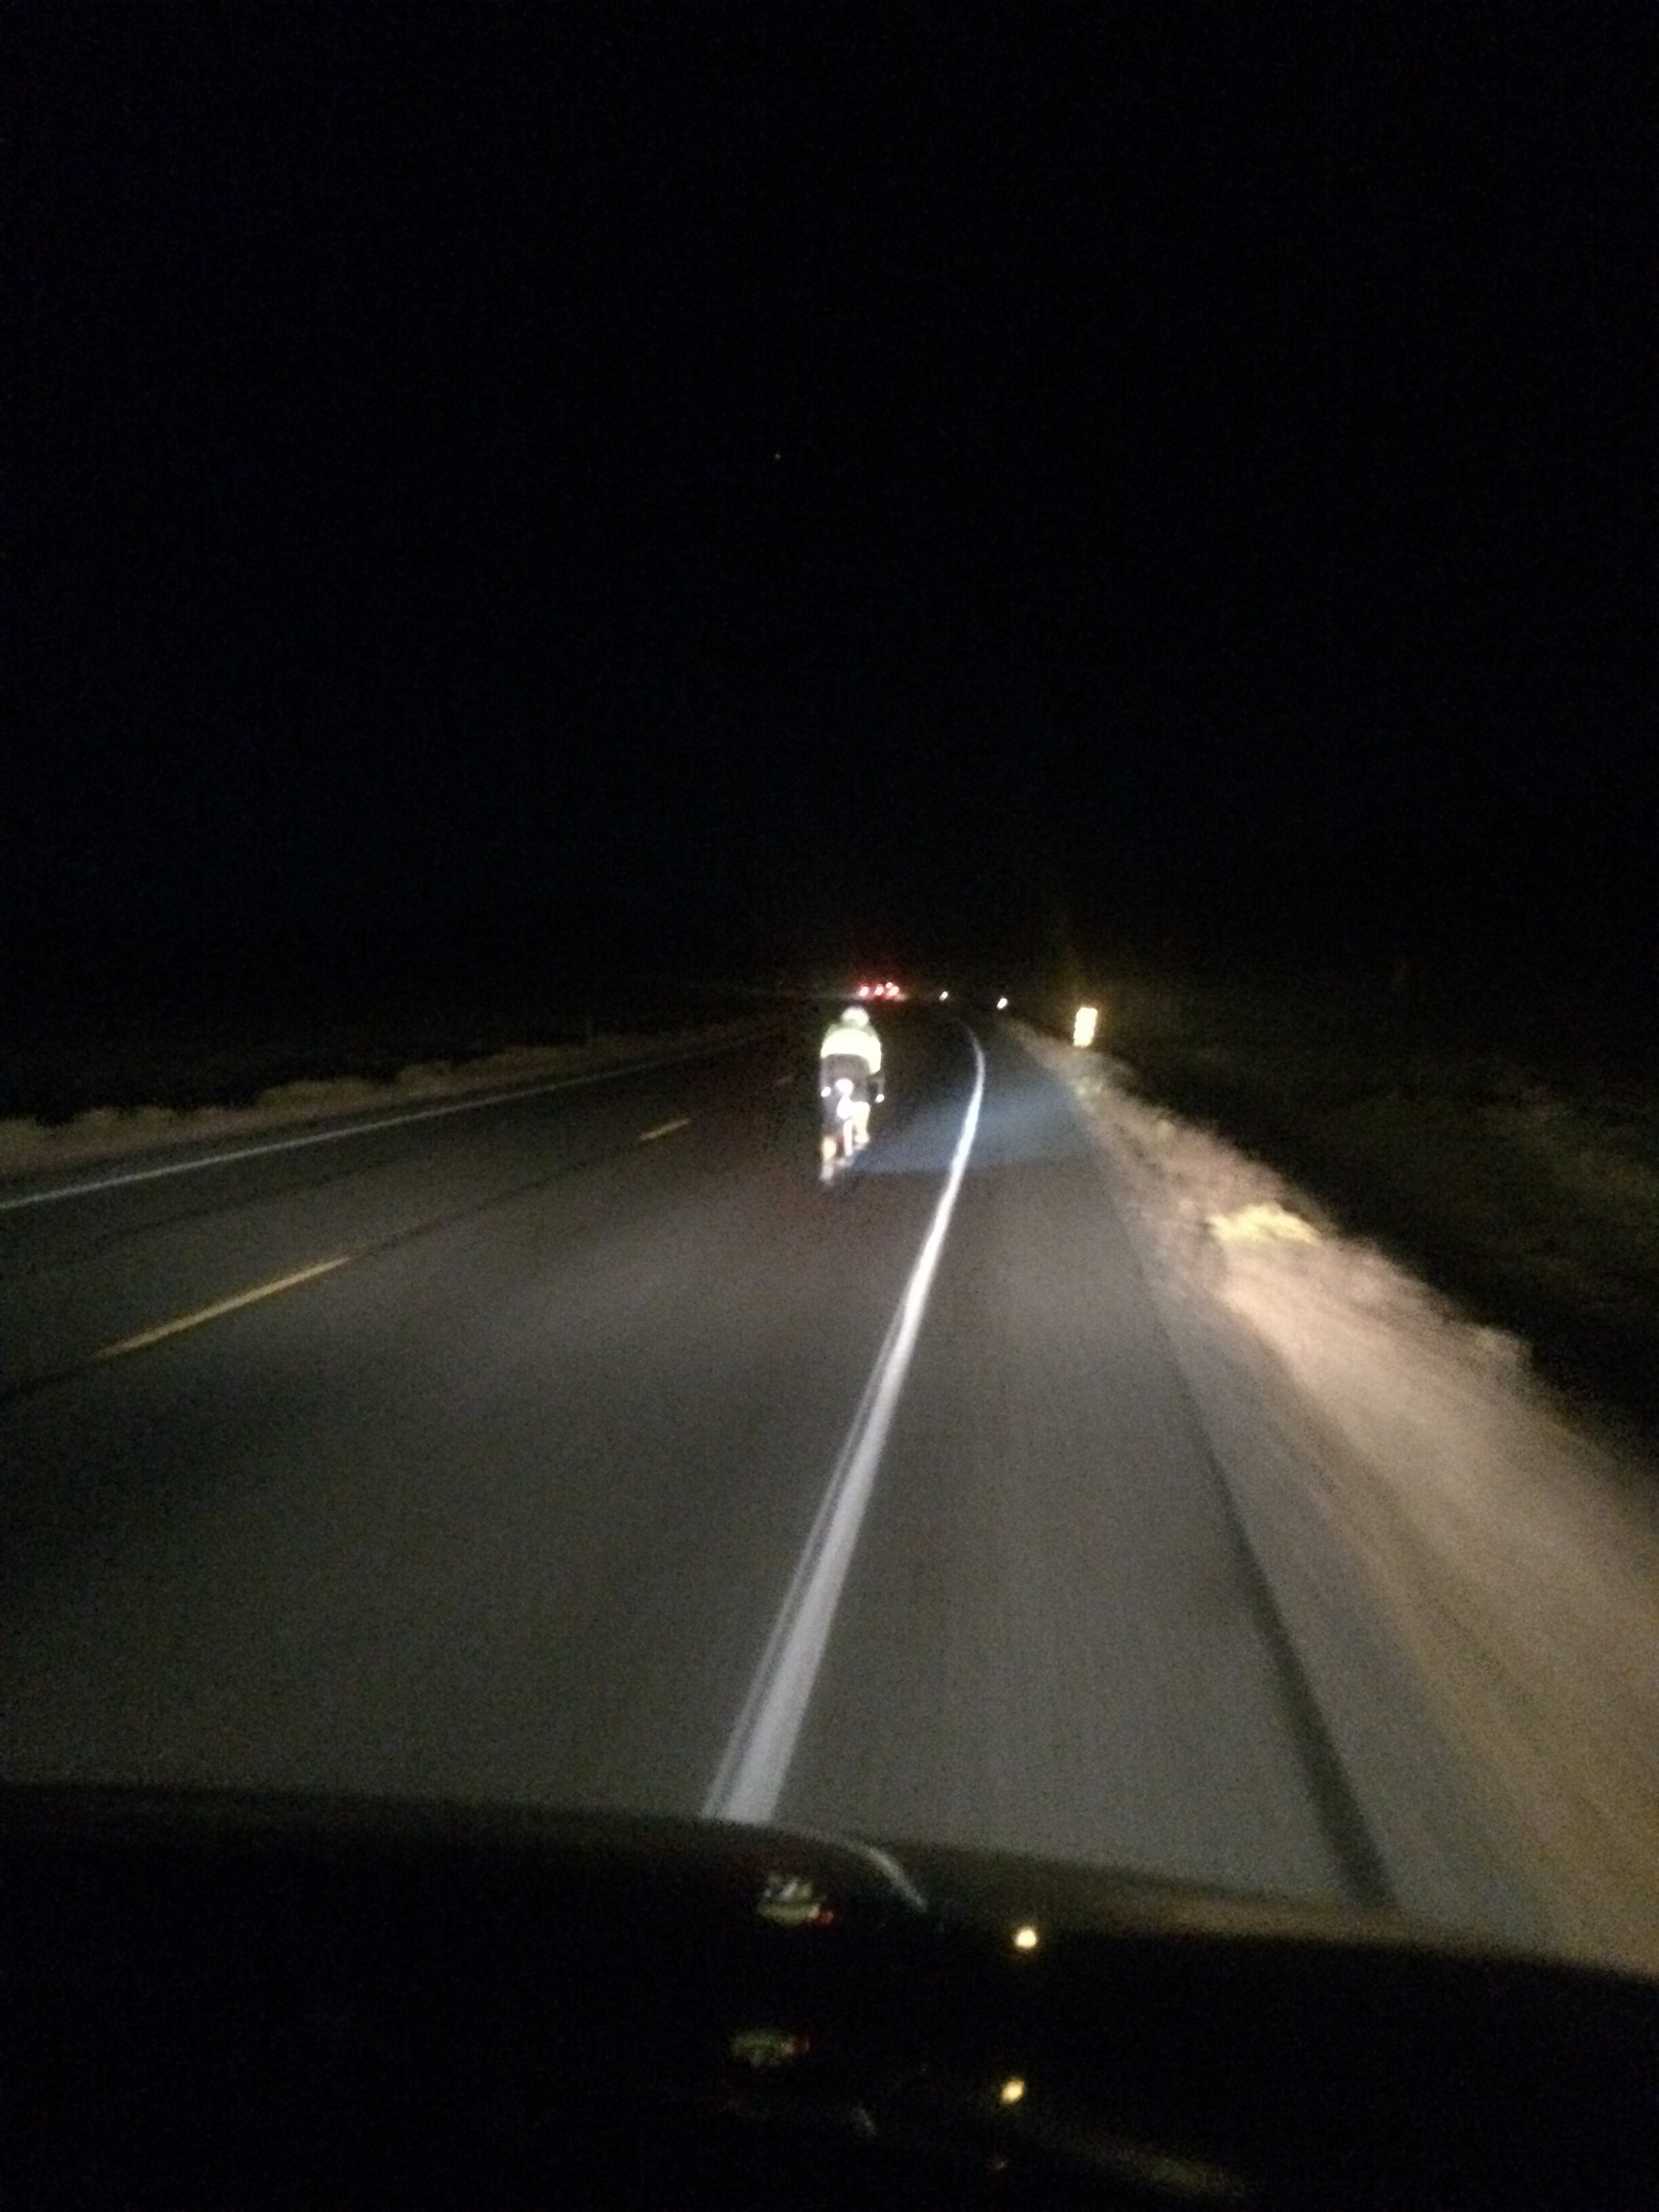 At this point in the race, I have no idea who this is. But, this is what it looks like to Direct Follow your rider at night.